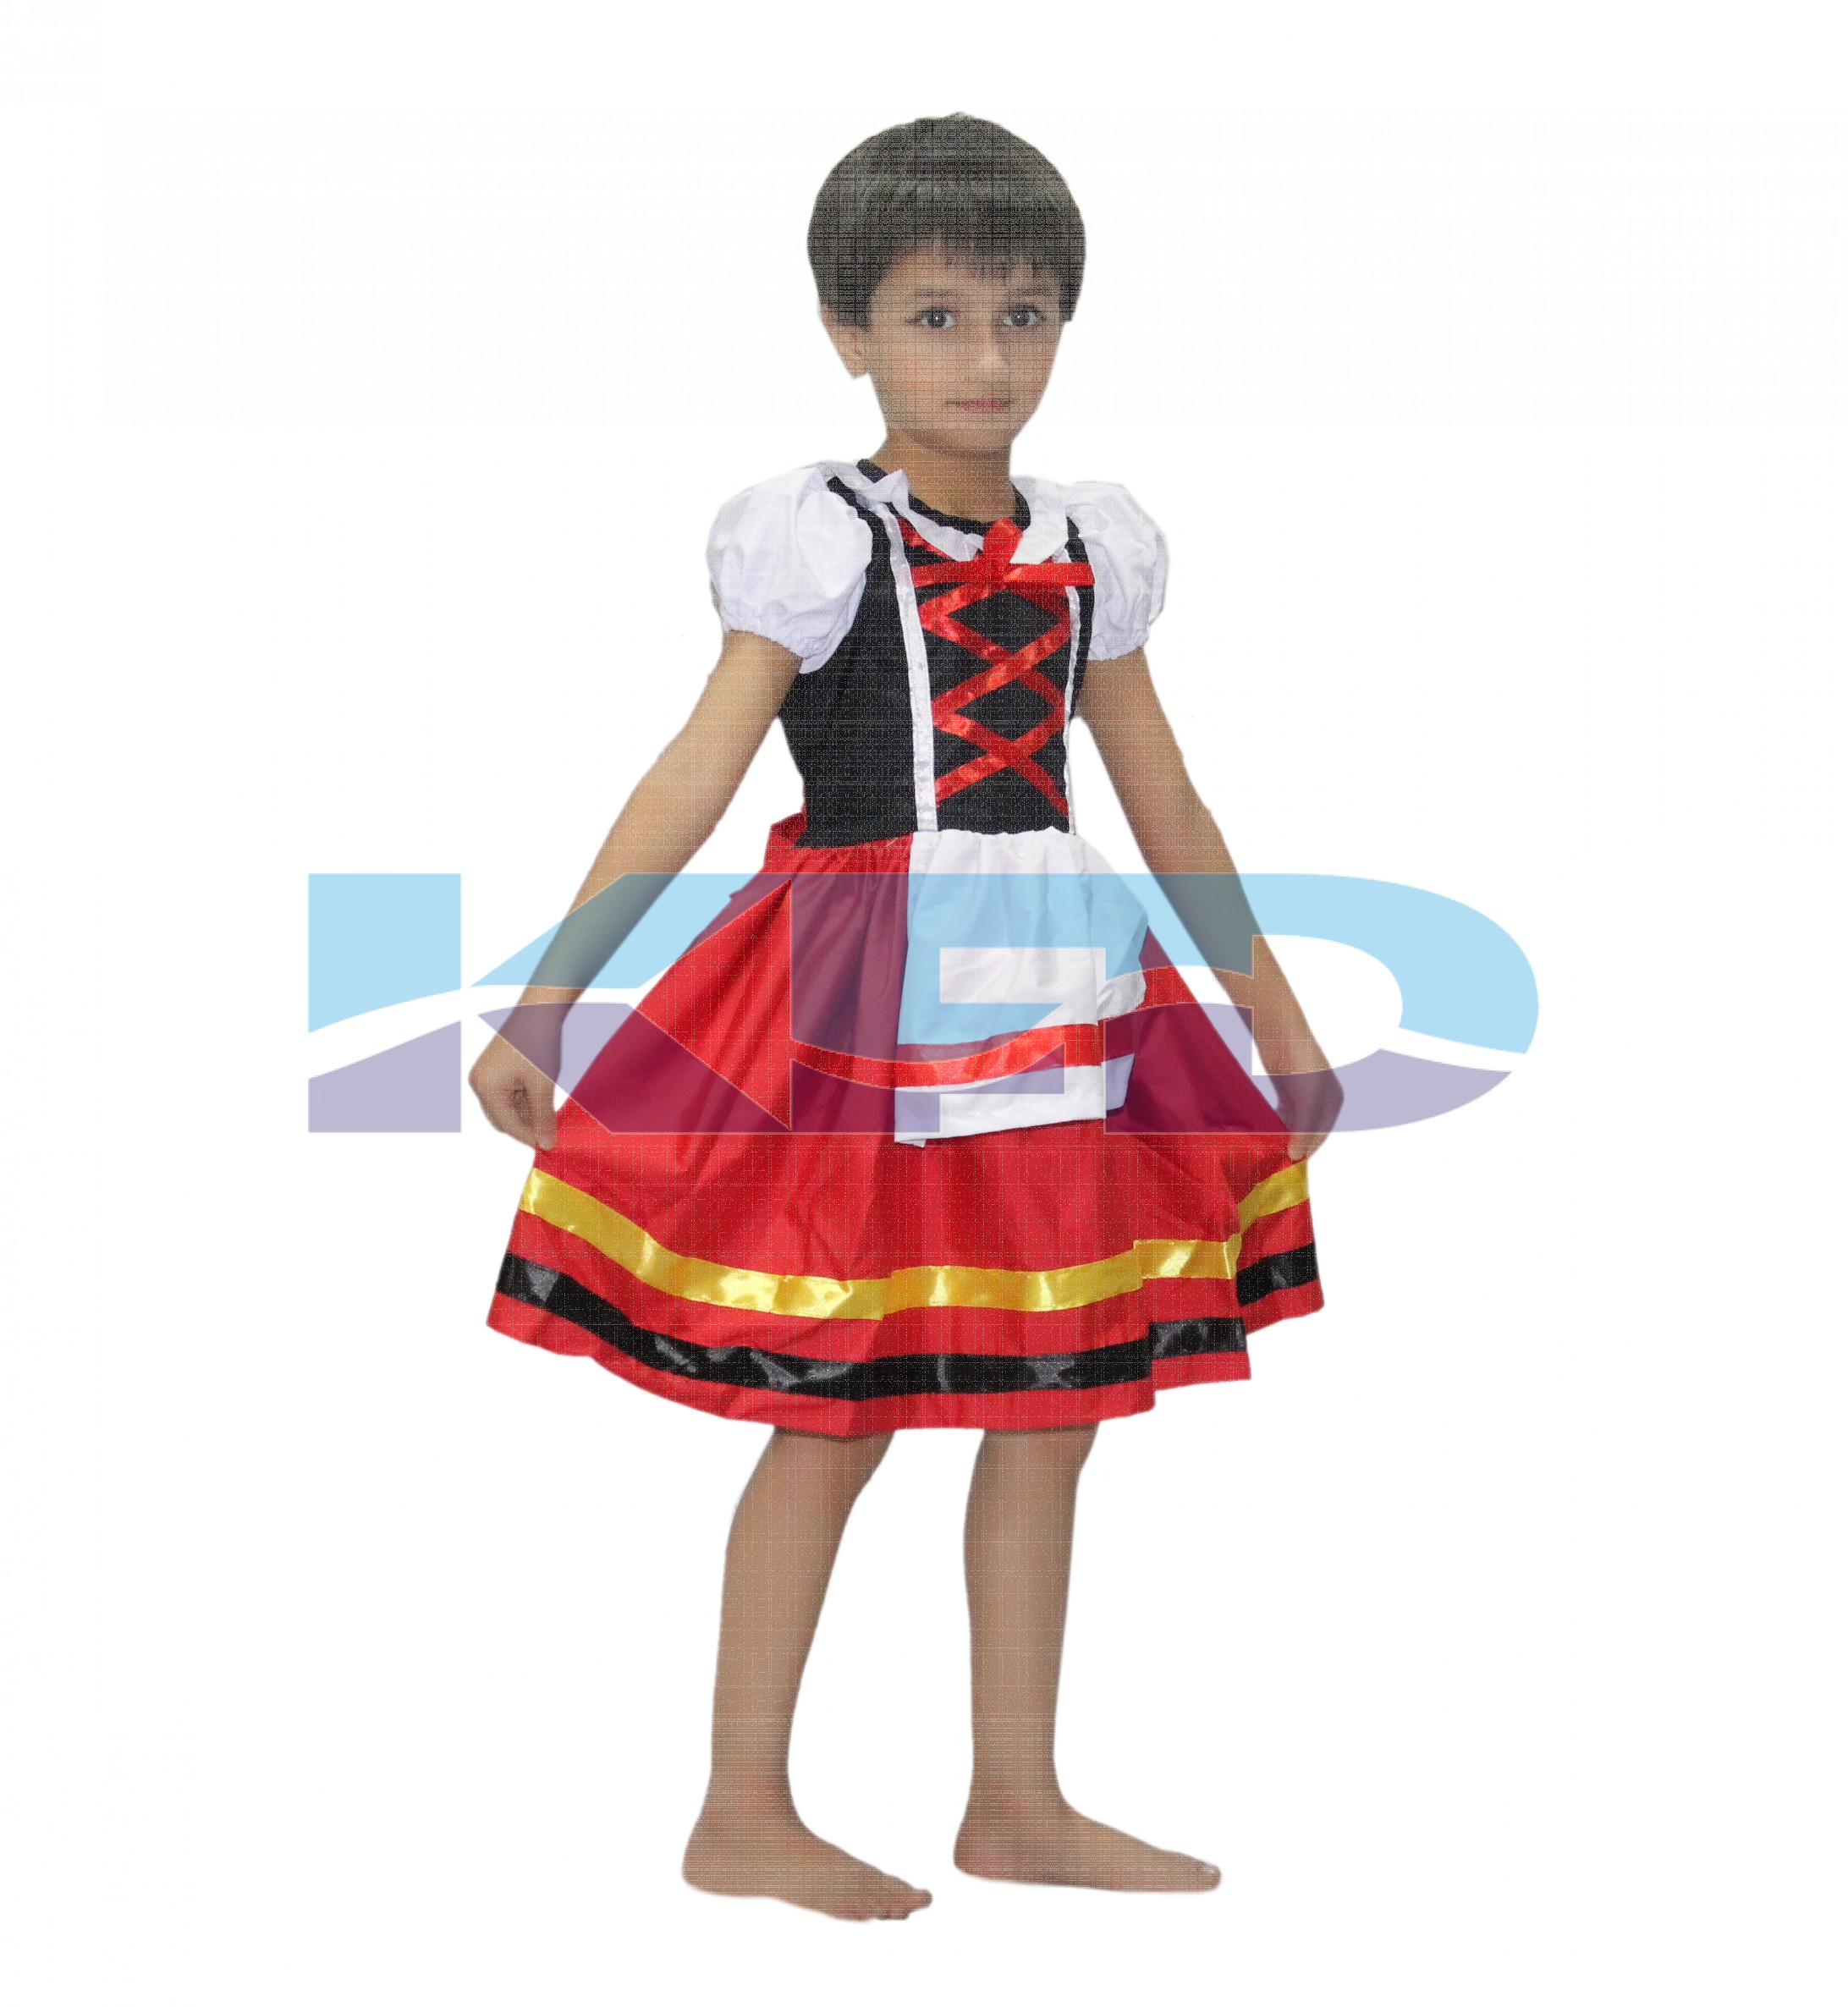 German Girl Costume For Kids/Oktoberfest Beer Costume For Kids/Cosplay Costume for Girls/California Costume/Theme Party/Competition/Stage Shows/Birthday Party Dress